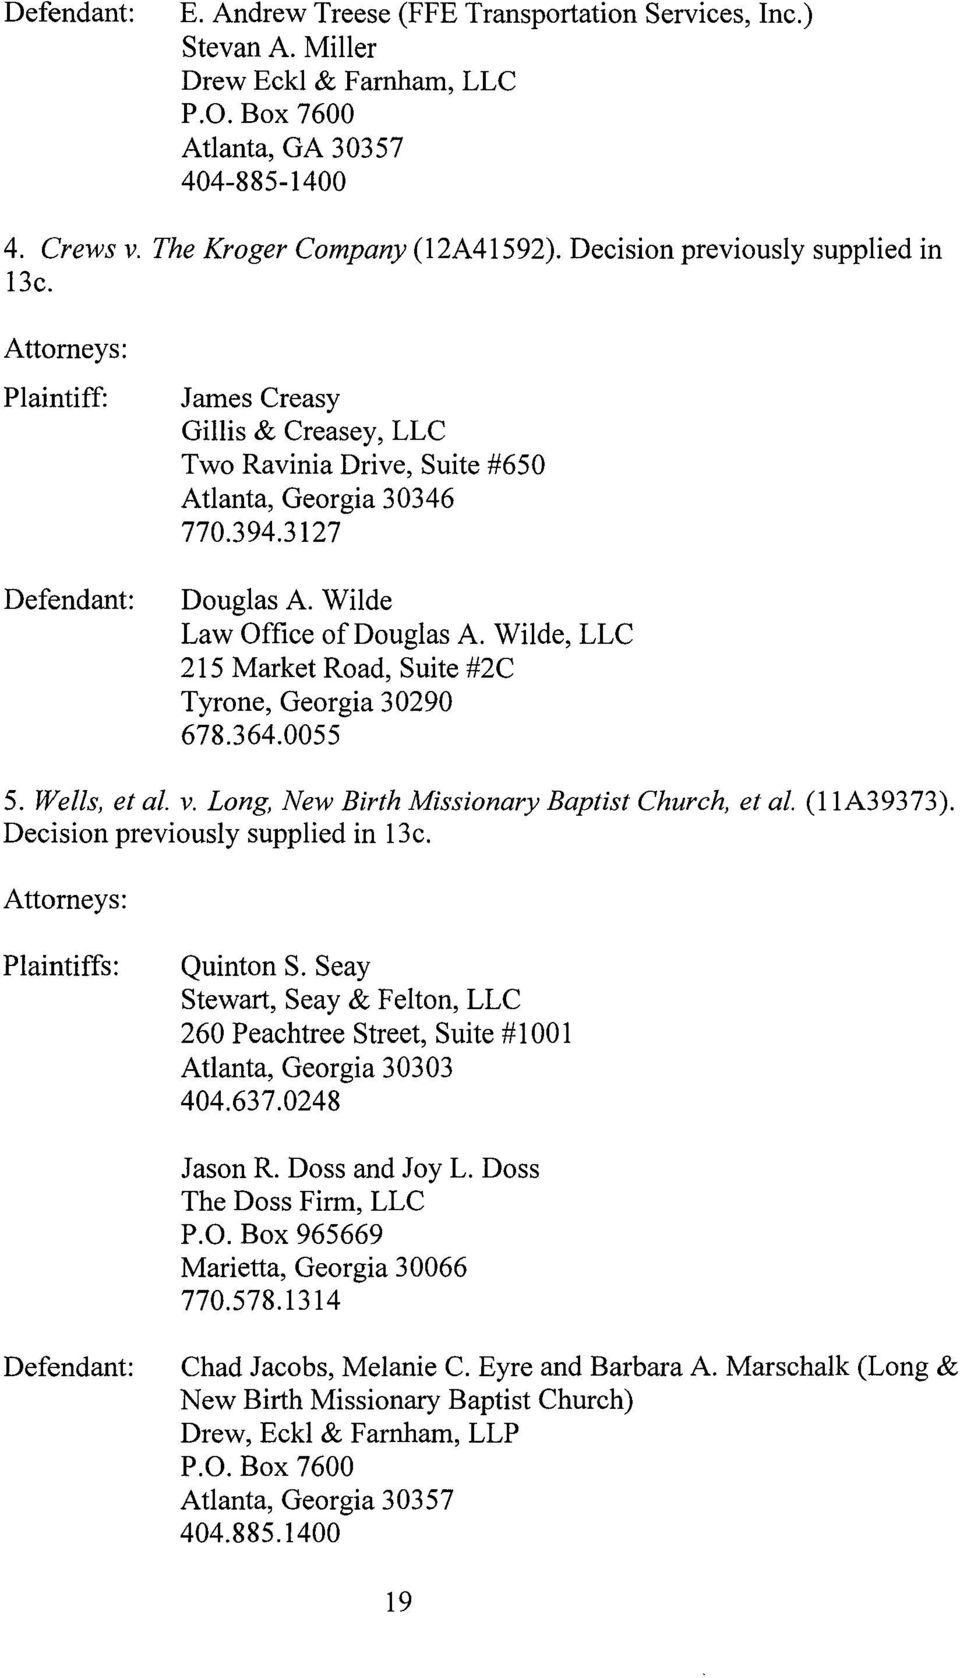 Wilde, LLC 215 Market Road, Suite #2C Tyrone, Georgia 30290 678.364.0055 5. Wells, et al. v. Long, New Birth Missionary Baptist Church, et al. (11A39373). Decision previously supplied in 13c.